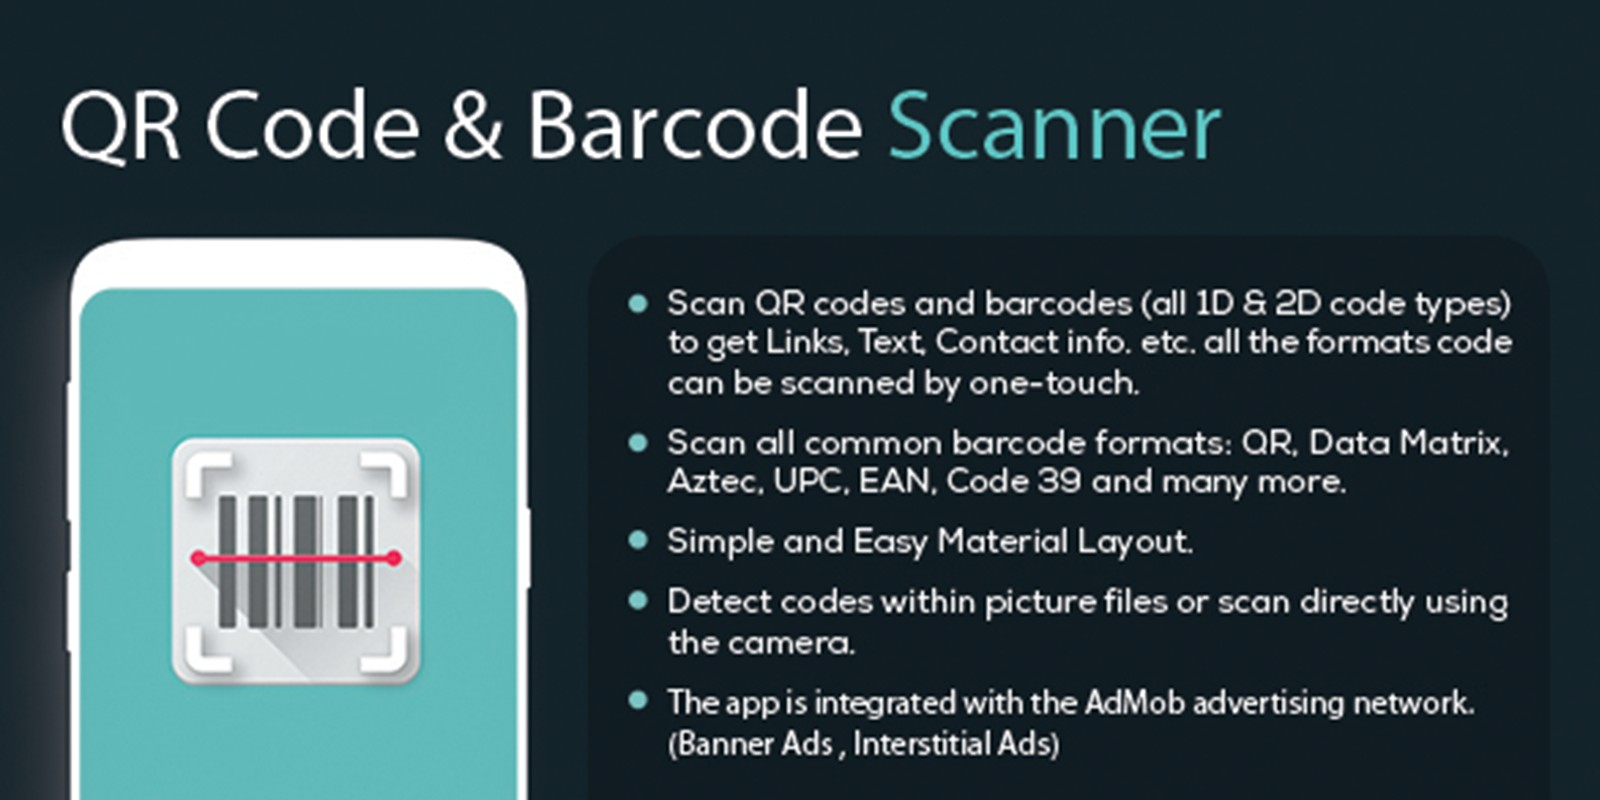 Quick Scanner - QR Code Scanner Android